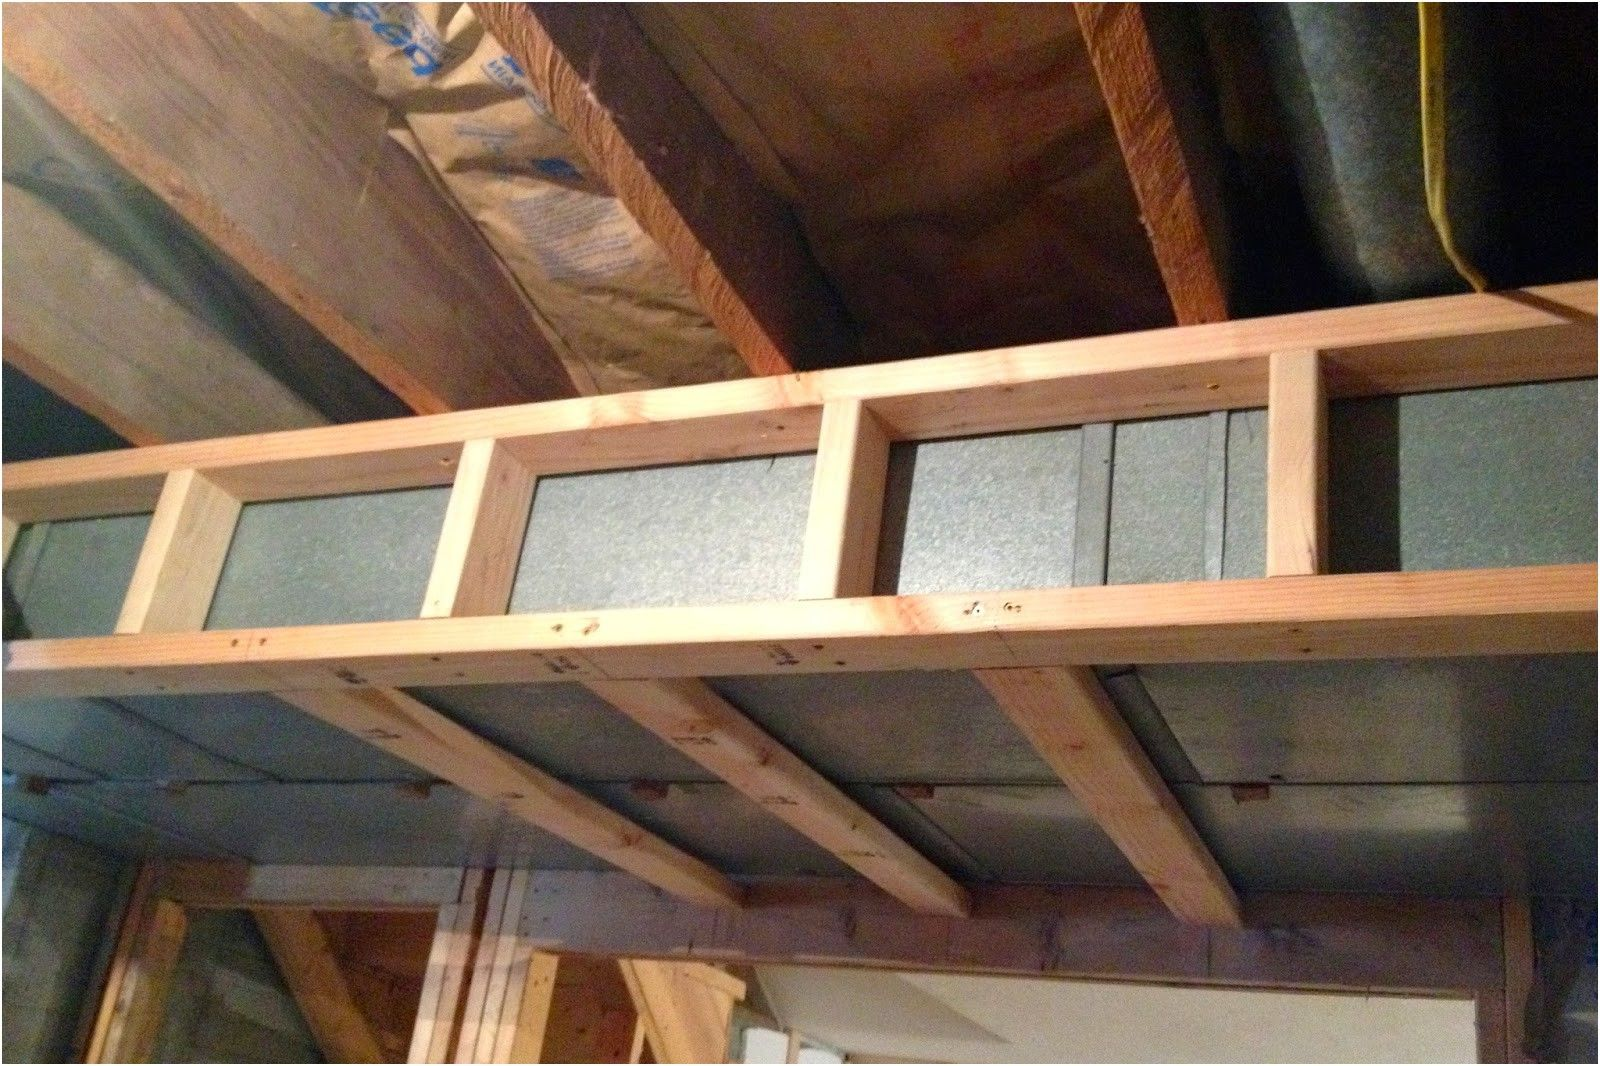 diy why spend more framing around ductwork in a basement from How To ...